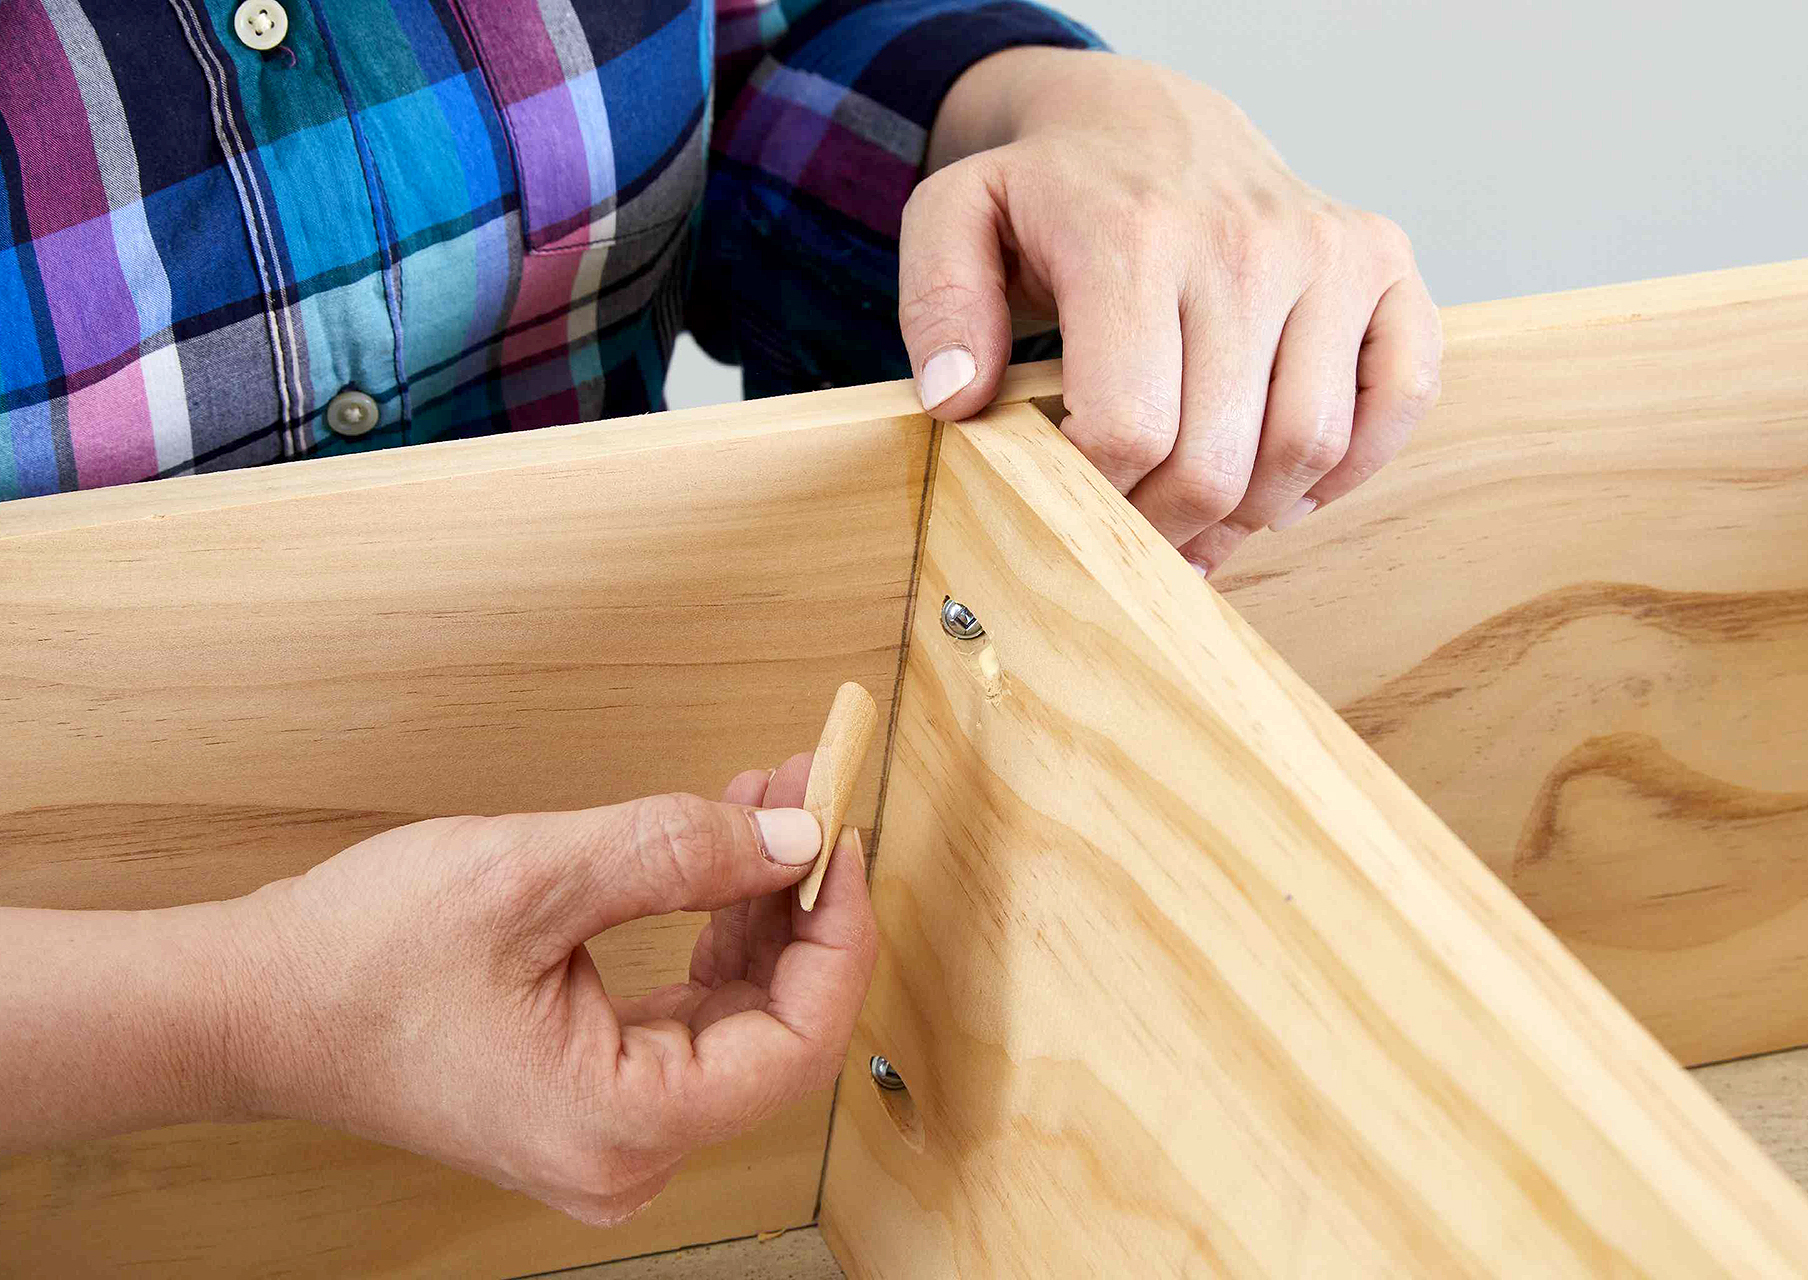 plug pocket holes in ladder with wood plugs